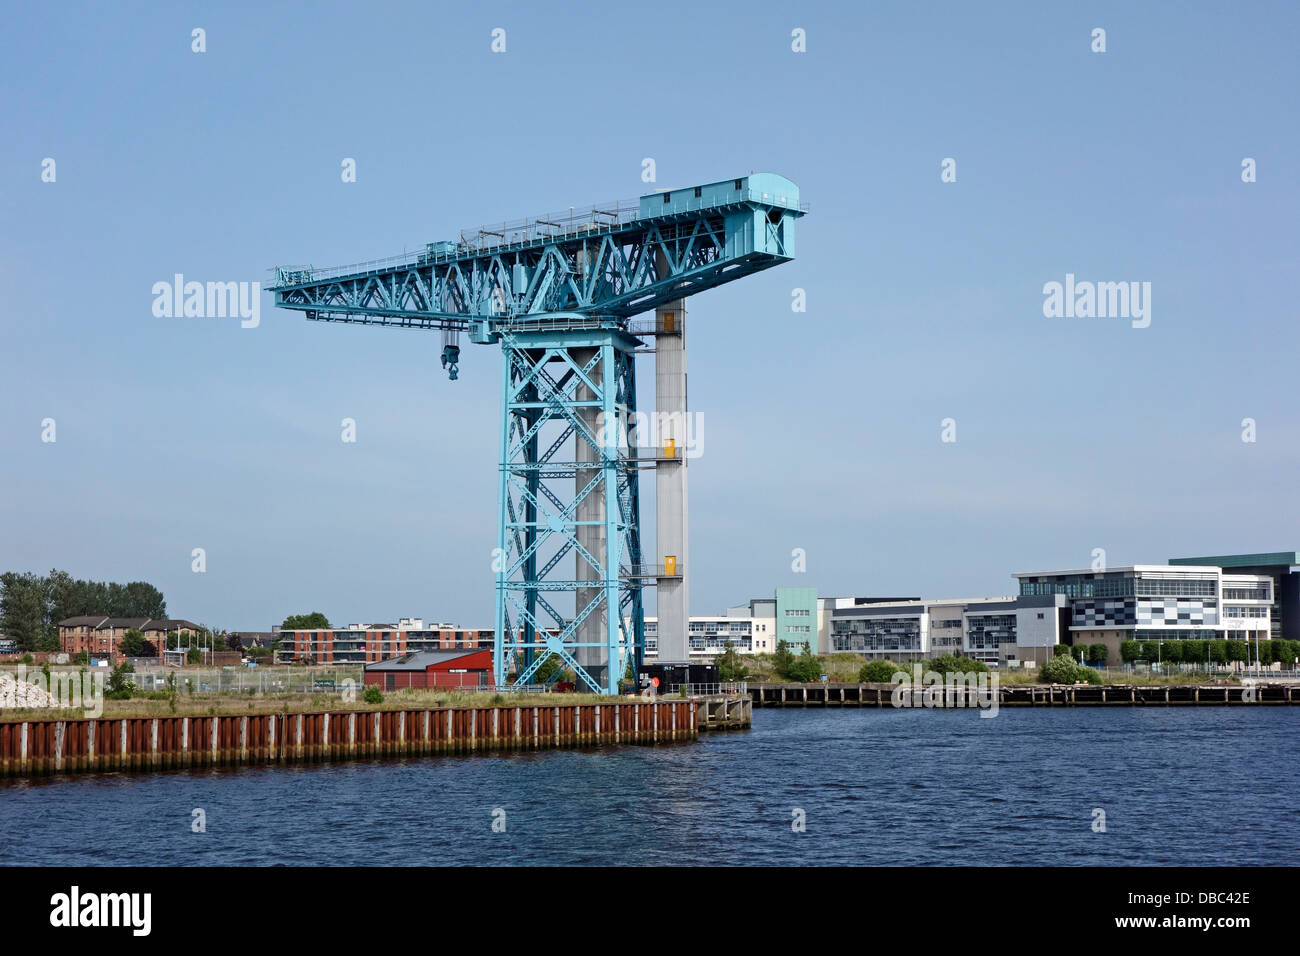 The Titan Crane in Clydebank Scotland on the site of the old John Brown shipyard viewed from the River Clyde & - Stock Image